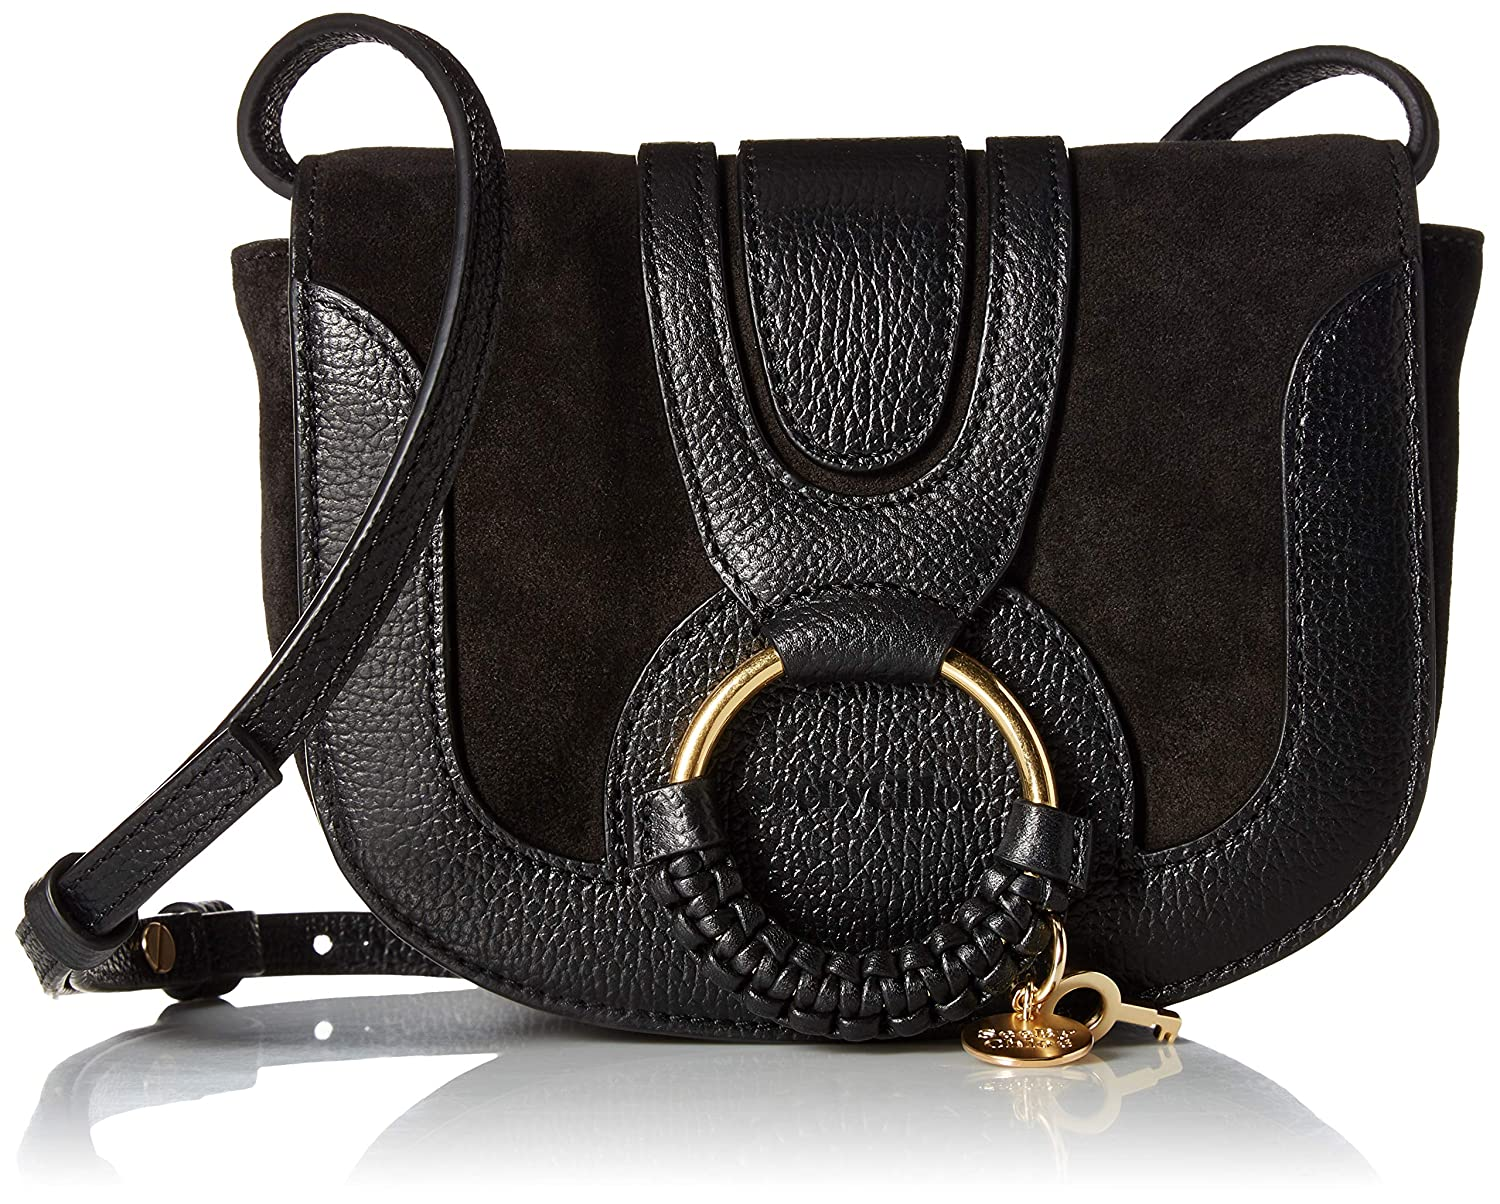 e38faaee7fb Amazon.com: See by Chloe Women's Hana Small Leather Crossbody Bag ...